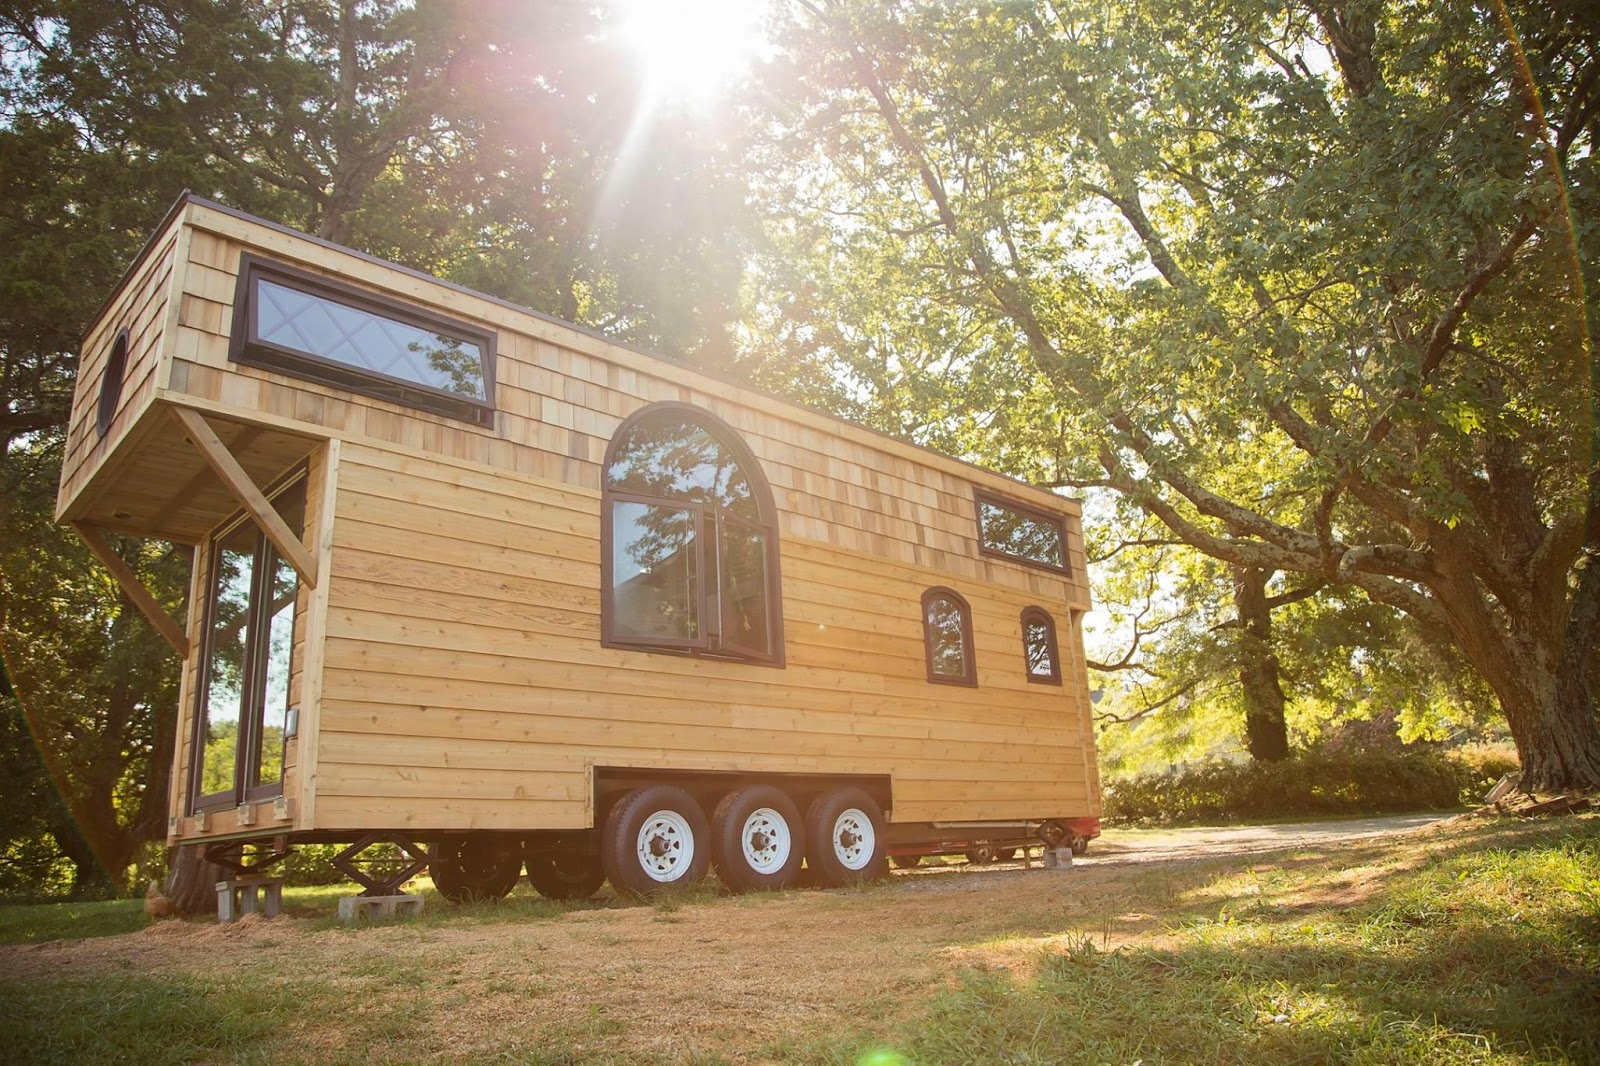 Old World Vermont Tiny Home 300 Sq Ft TINY HOUSE TOWN